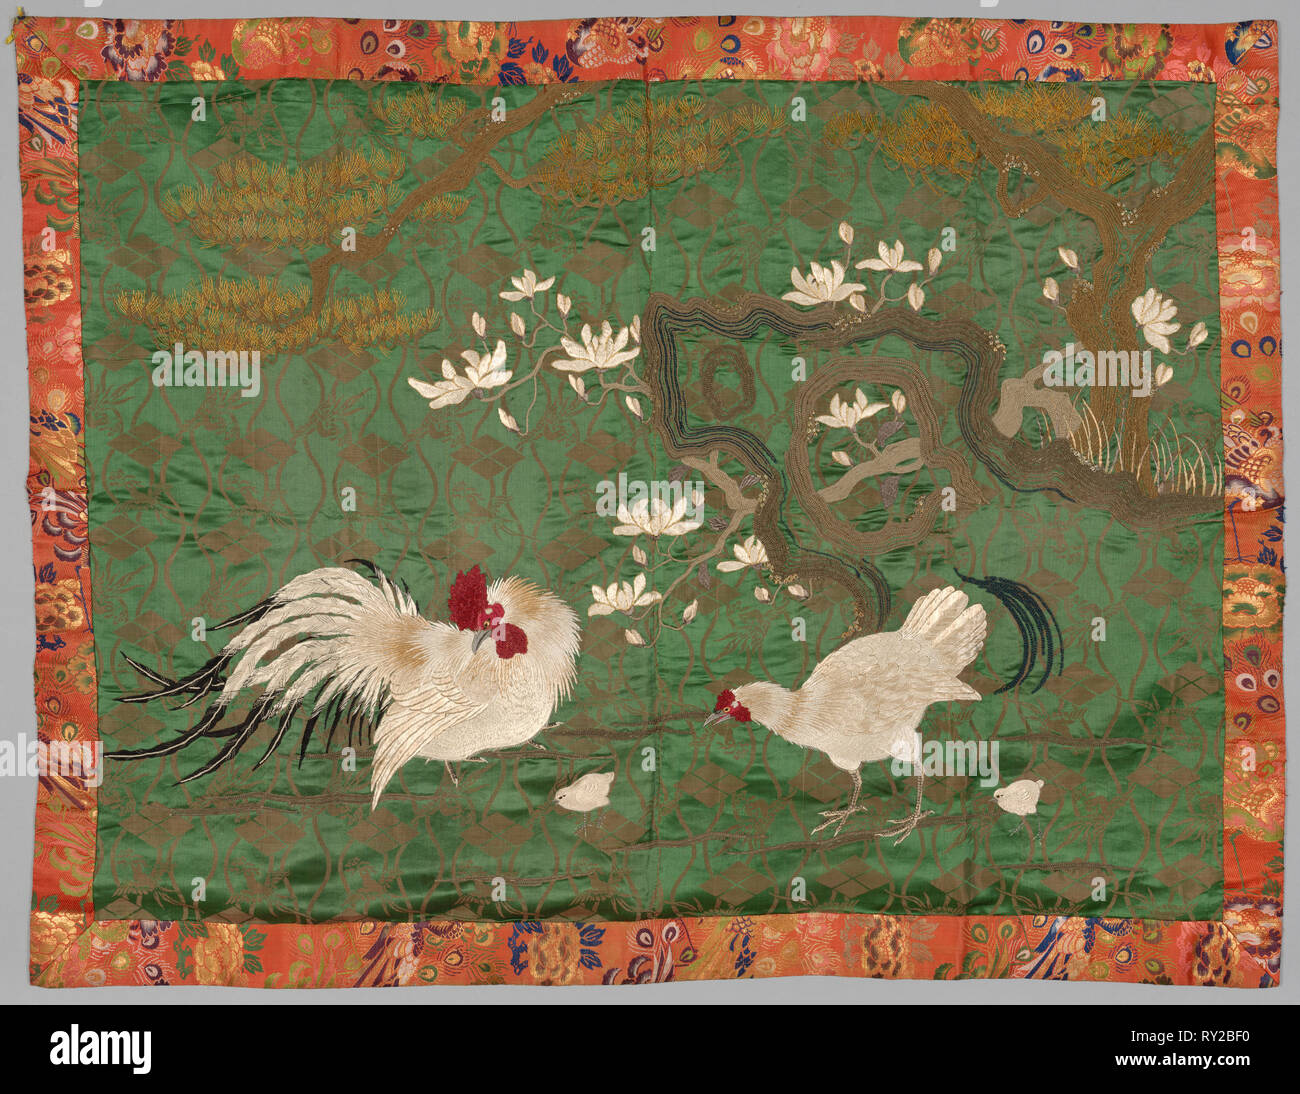 Weber Rooster 57 Cm 50 8 38 1 Cm Stock Photos 50 8 38 1 Cm Stock Images Alamy